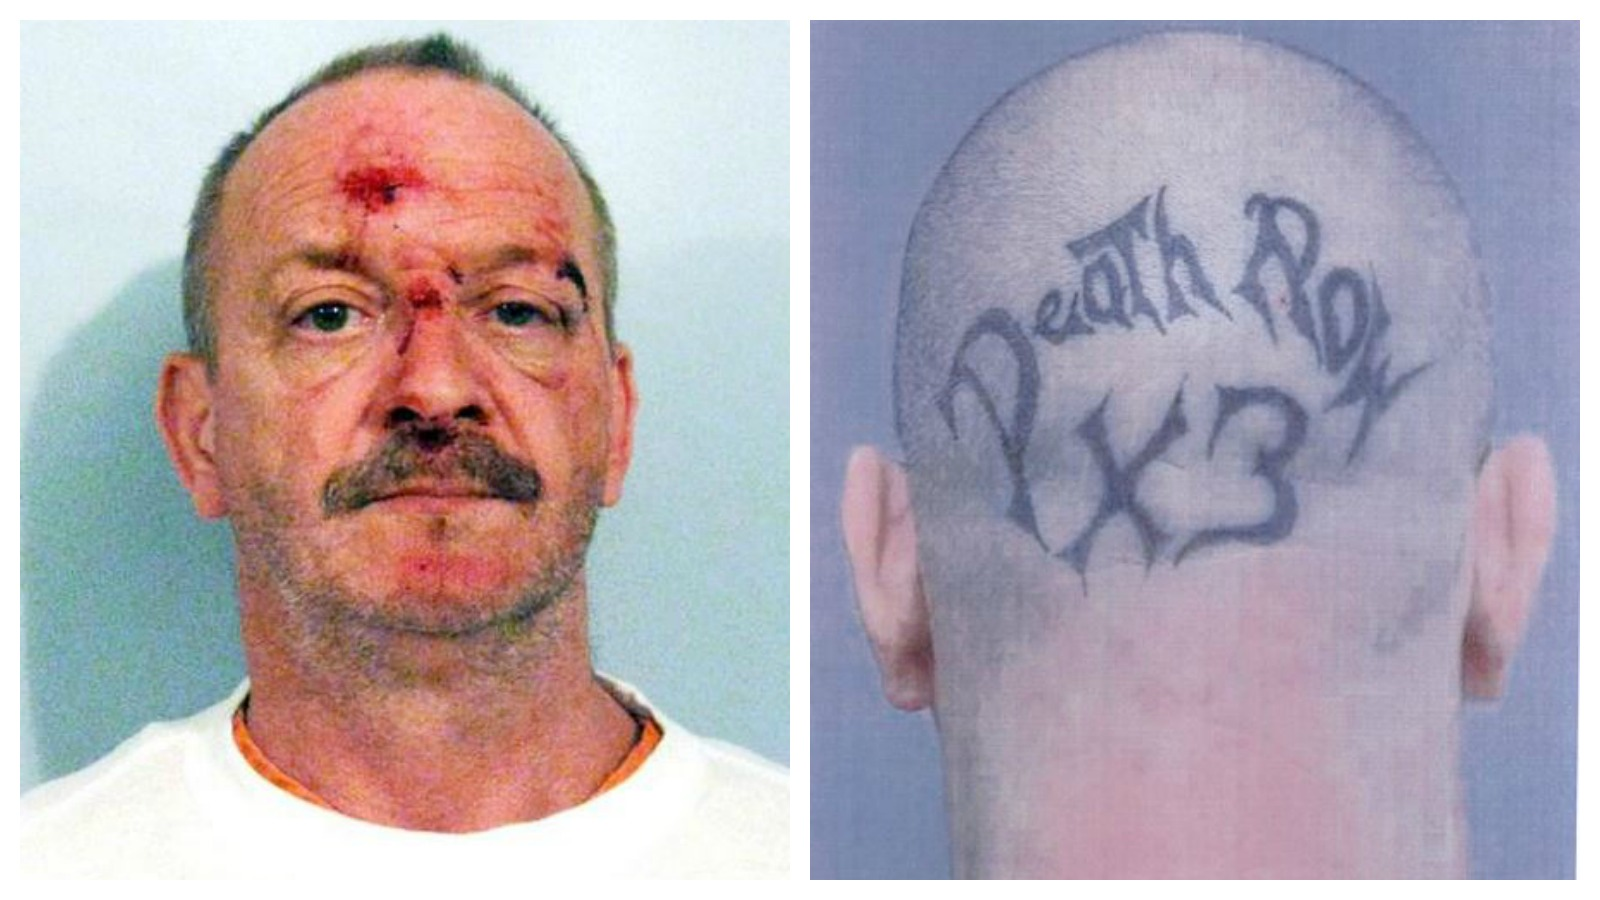 Na foto: A sinistra tatuagem do serial killer Willian Clyde Gibson. Créditos: My Fox 8.